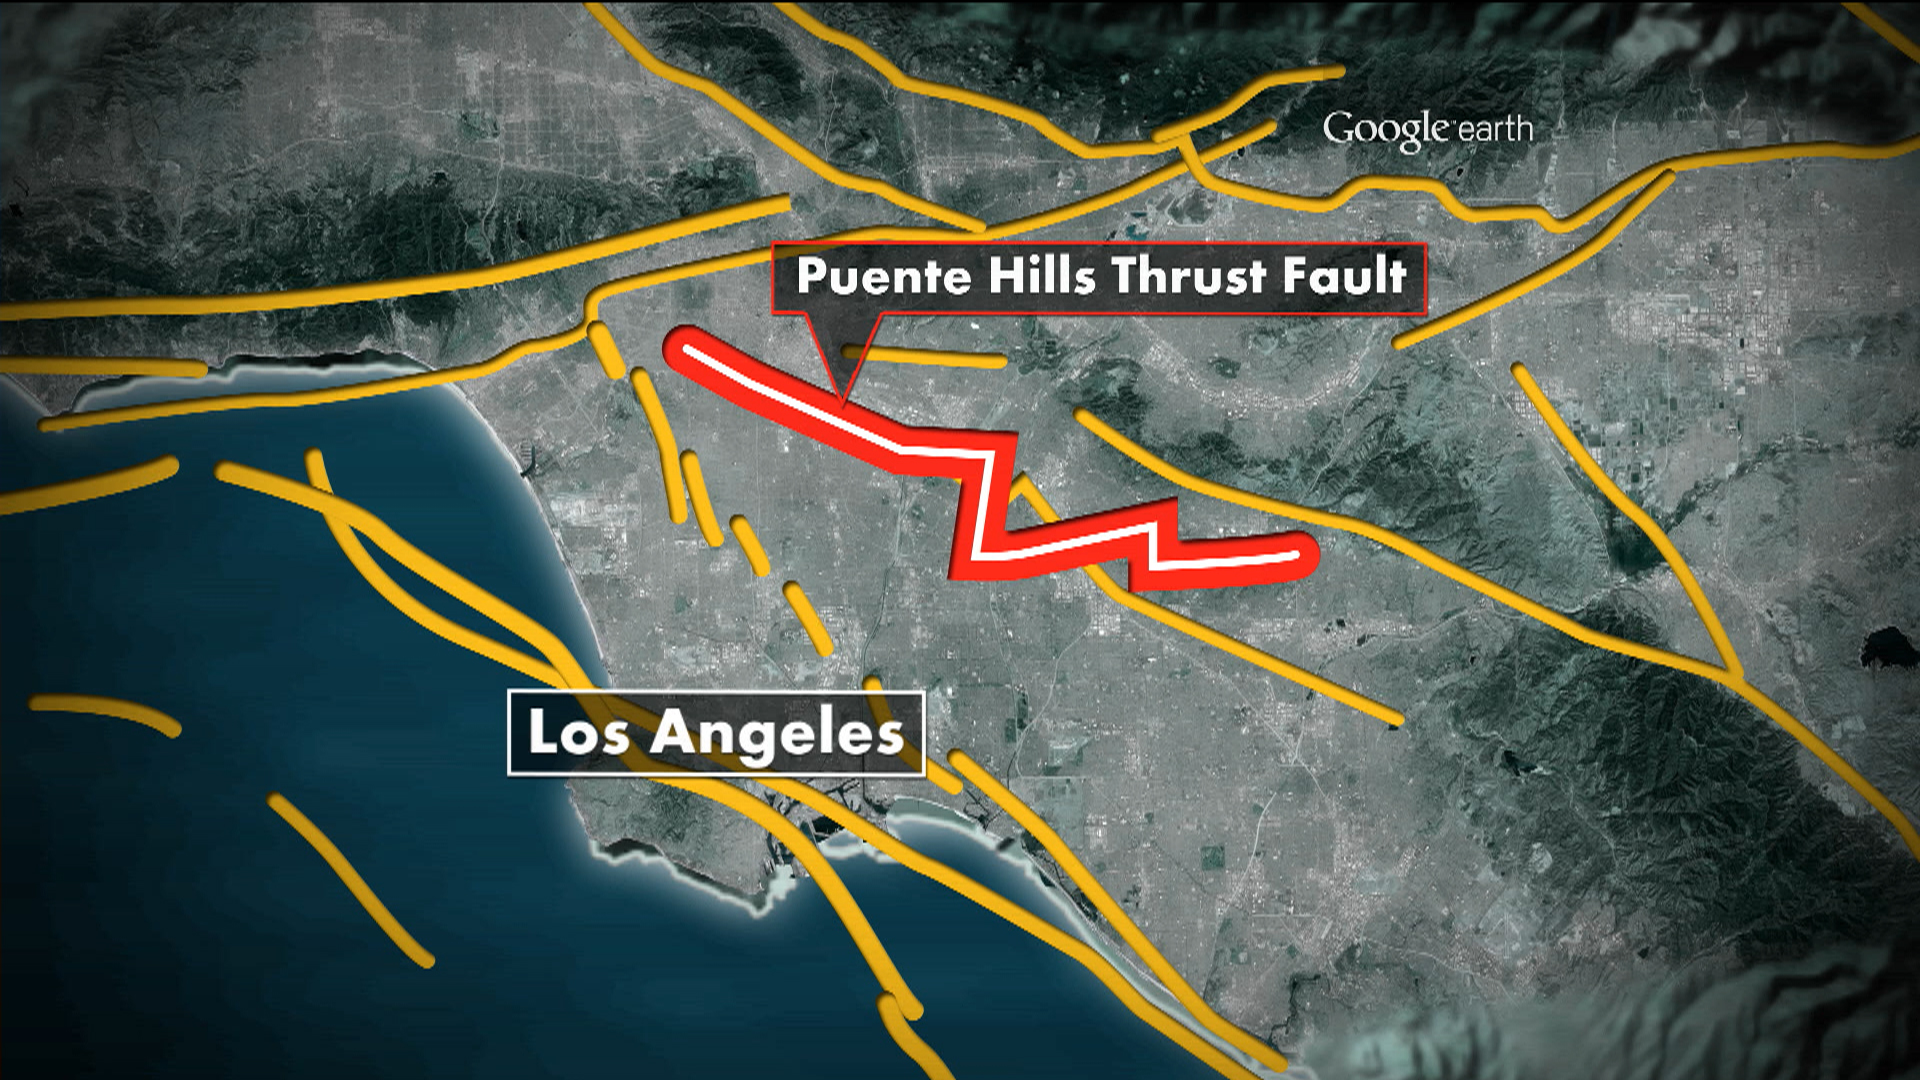 Earthquake Experts Alarmed by California's Puente Hills Fault on al jazeera map, outline of a theme park map, cnn map, coverage map, paramount map, gulf war map, cartoon network map, the west wing map, npr map, make a park map, trayvon martin map, texas state senate map, google map, world map, mexico tourism map, viacom map,